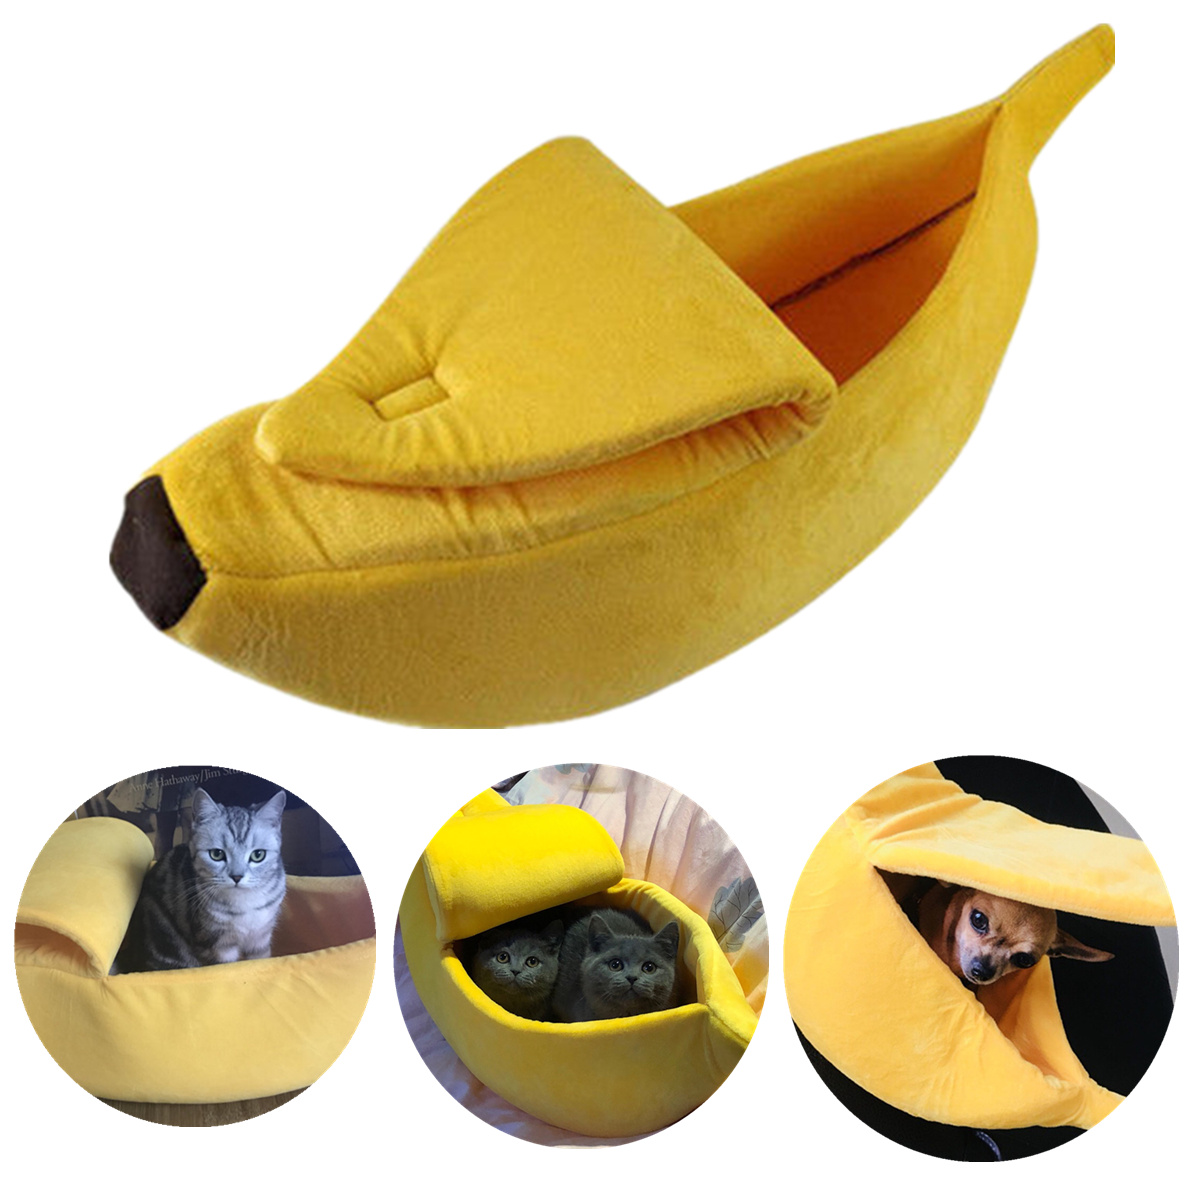 Pet Dog Cat Bed Warm House Mat Durable Kennel Doggy Soft Puppy Cushion Banana Shape Basket